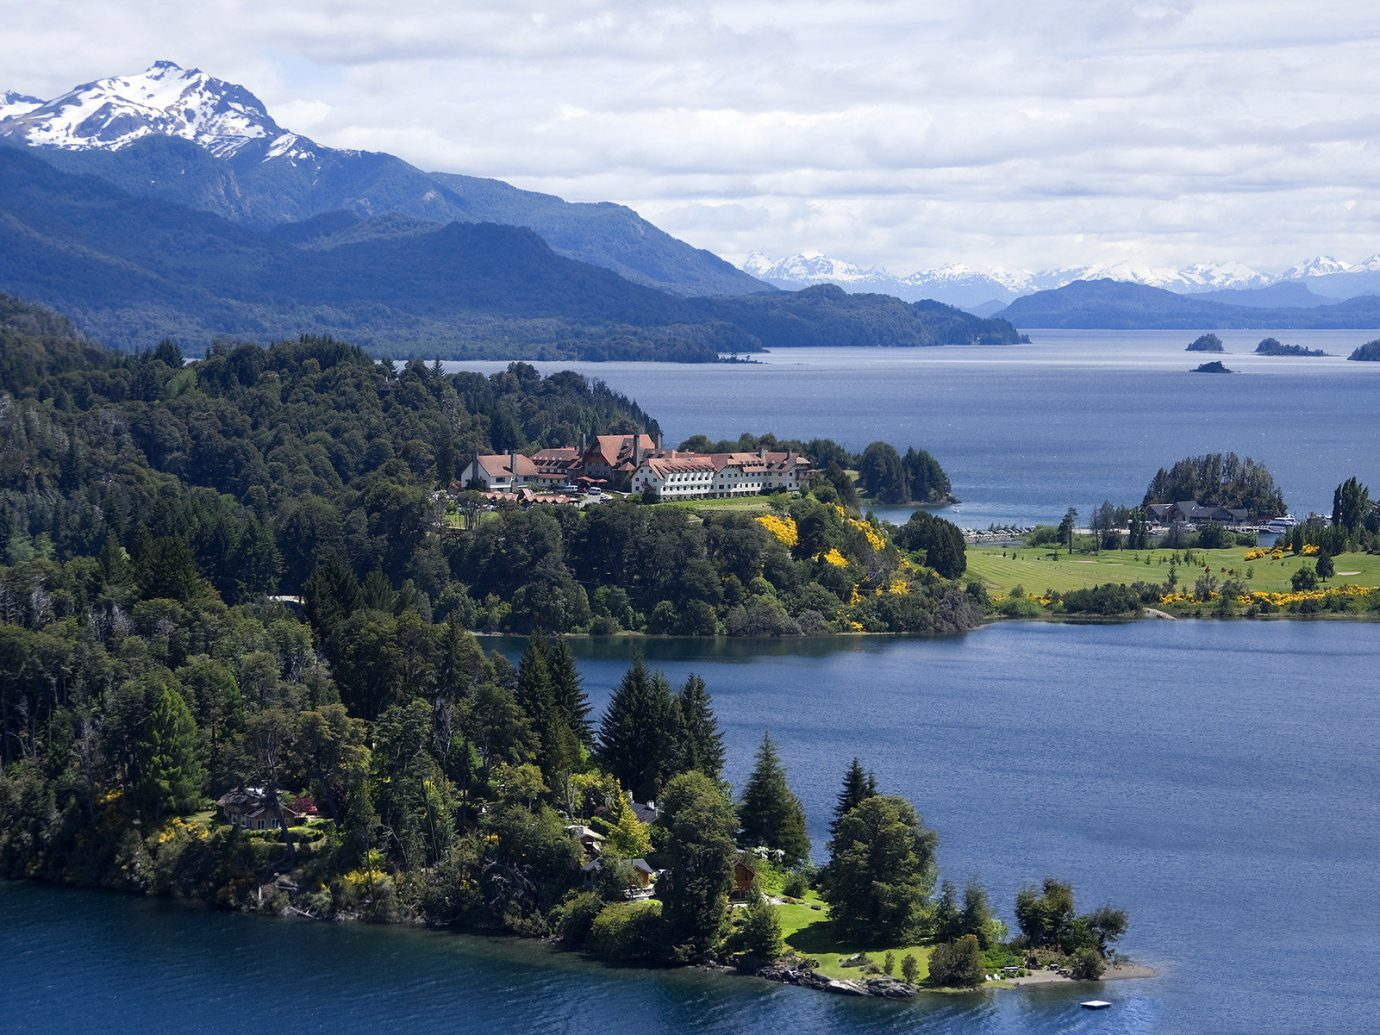 alps Outdoors + Adventure reservoir water mountain outdoor sky tree Nature Lake highland loch wilderness fjord River lake district fell Coast mount scenery mountain range background cloud hill landscape hill station promontory national park overlooking beautiful hillside surrounded traveling distance shore Island